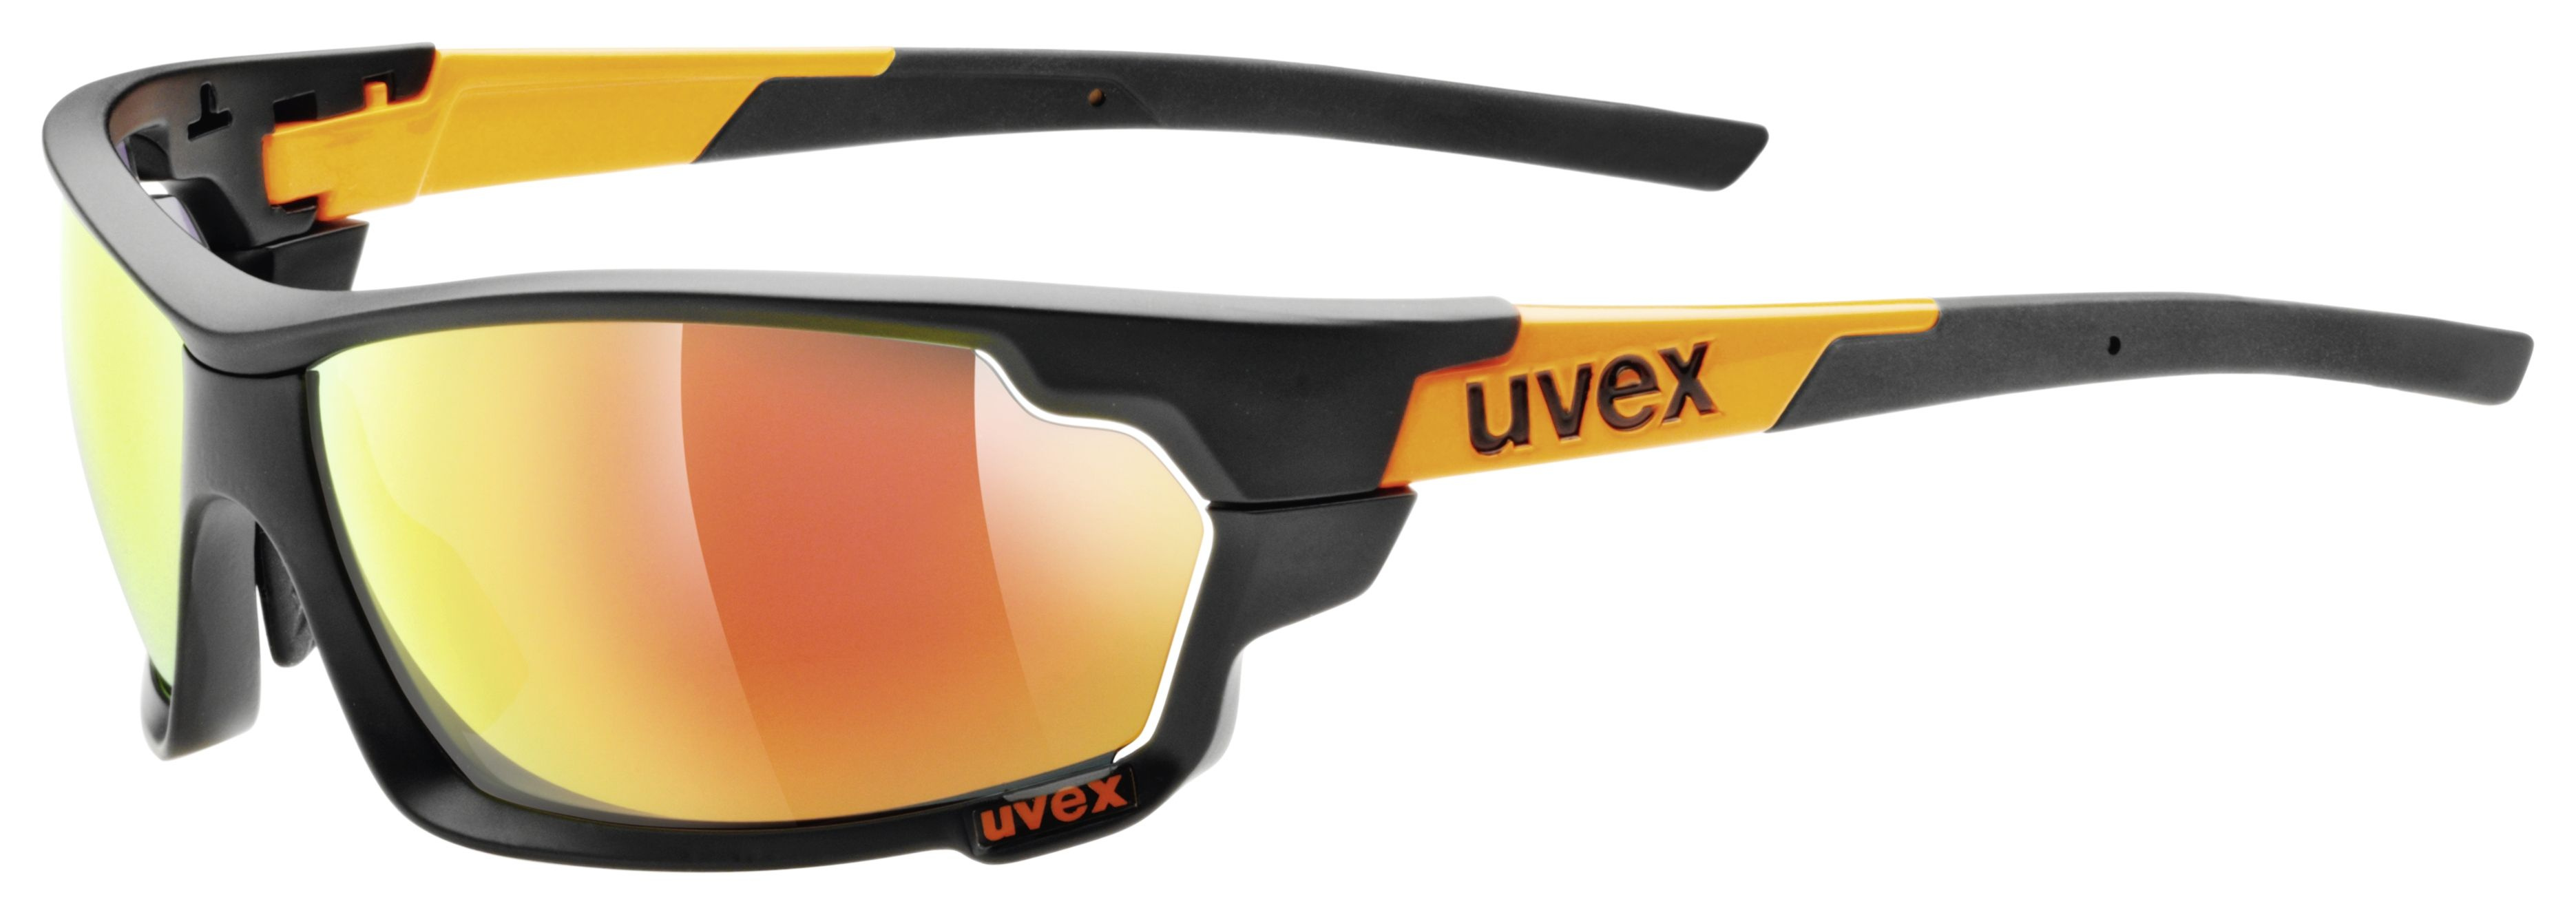 bfb9a2a6fdb That s all you need to adjust the casual uvex sportstyle 702 to alternating  light conditions. Finde diesen Pin und vieles mehr auf uvex cycling     eyewear ...